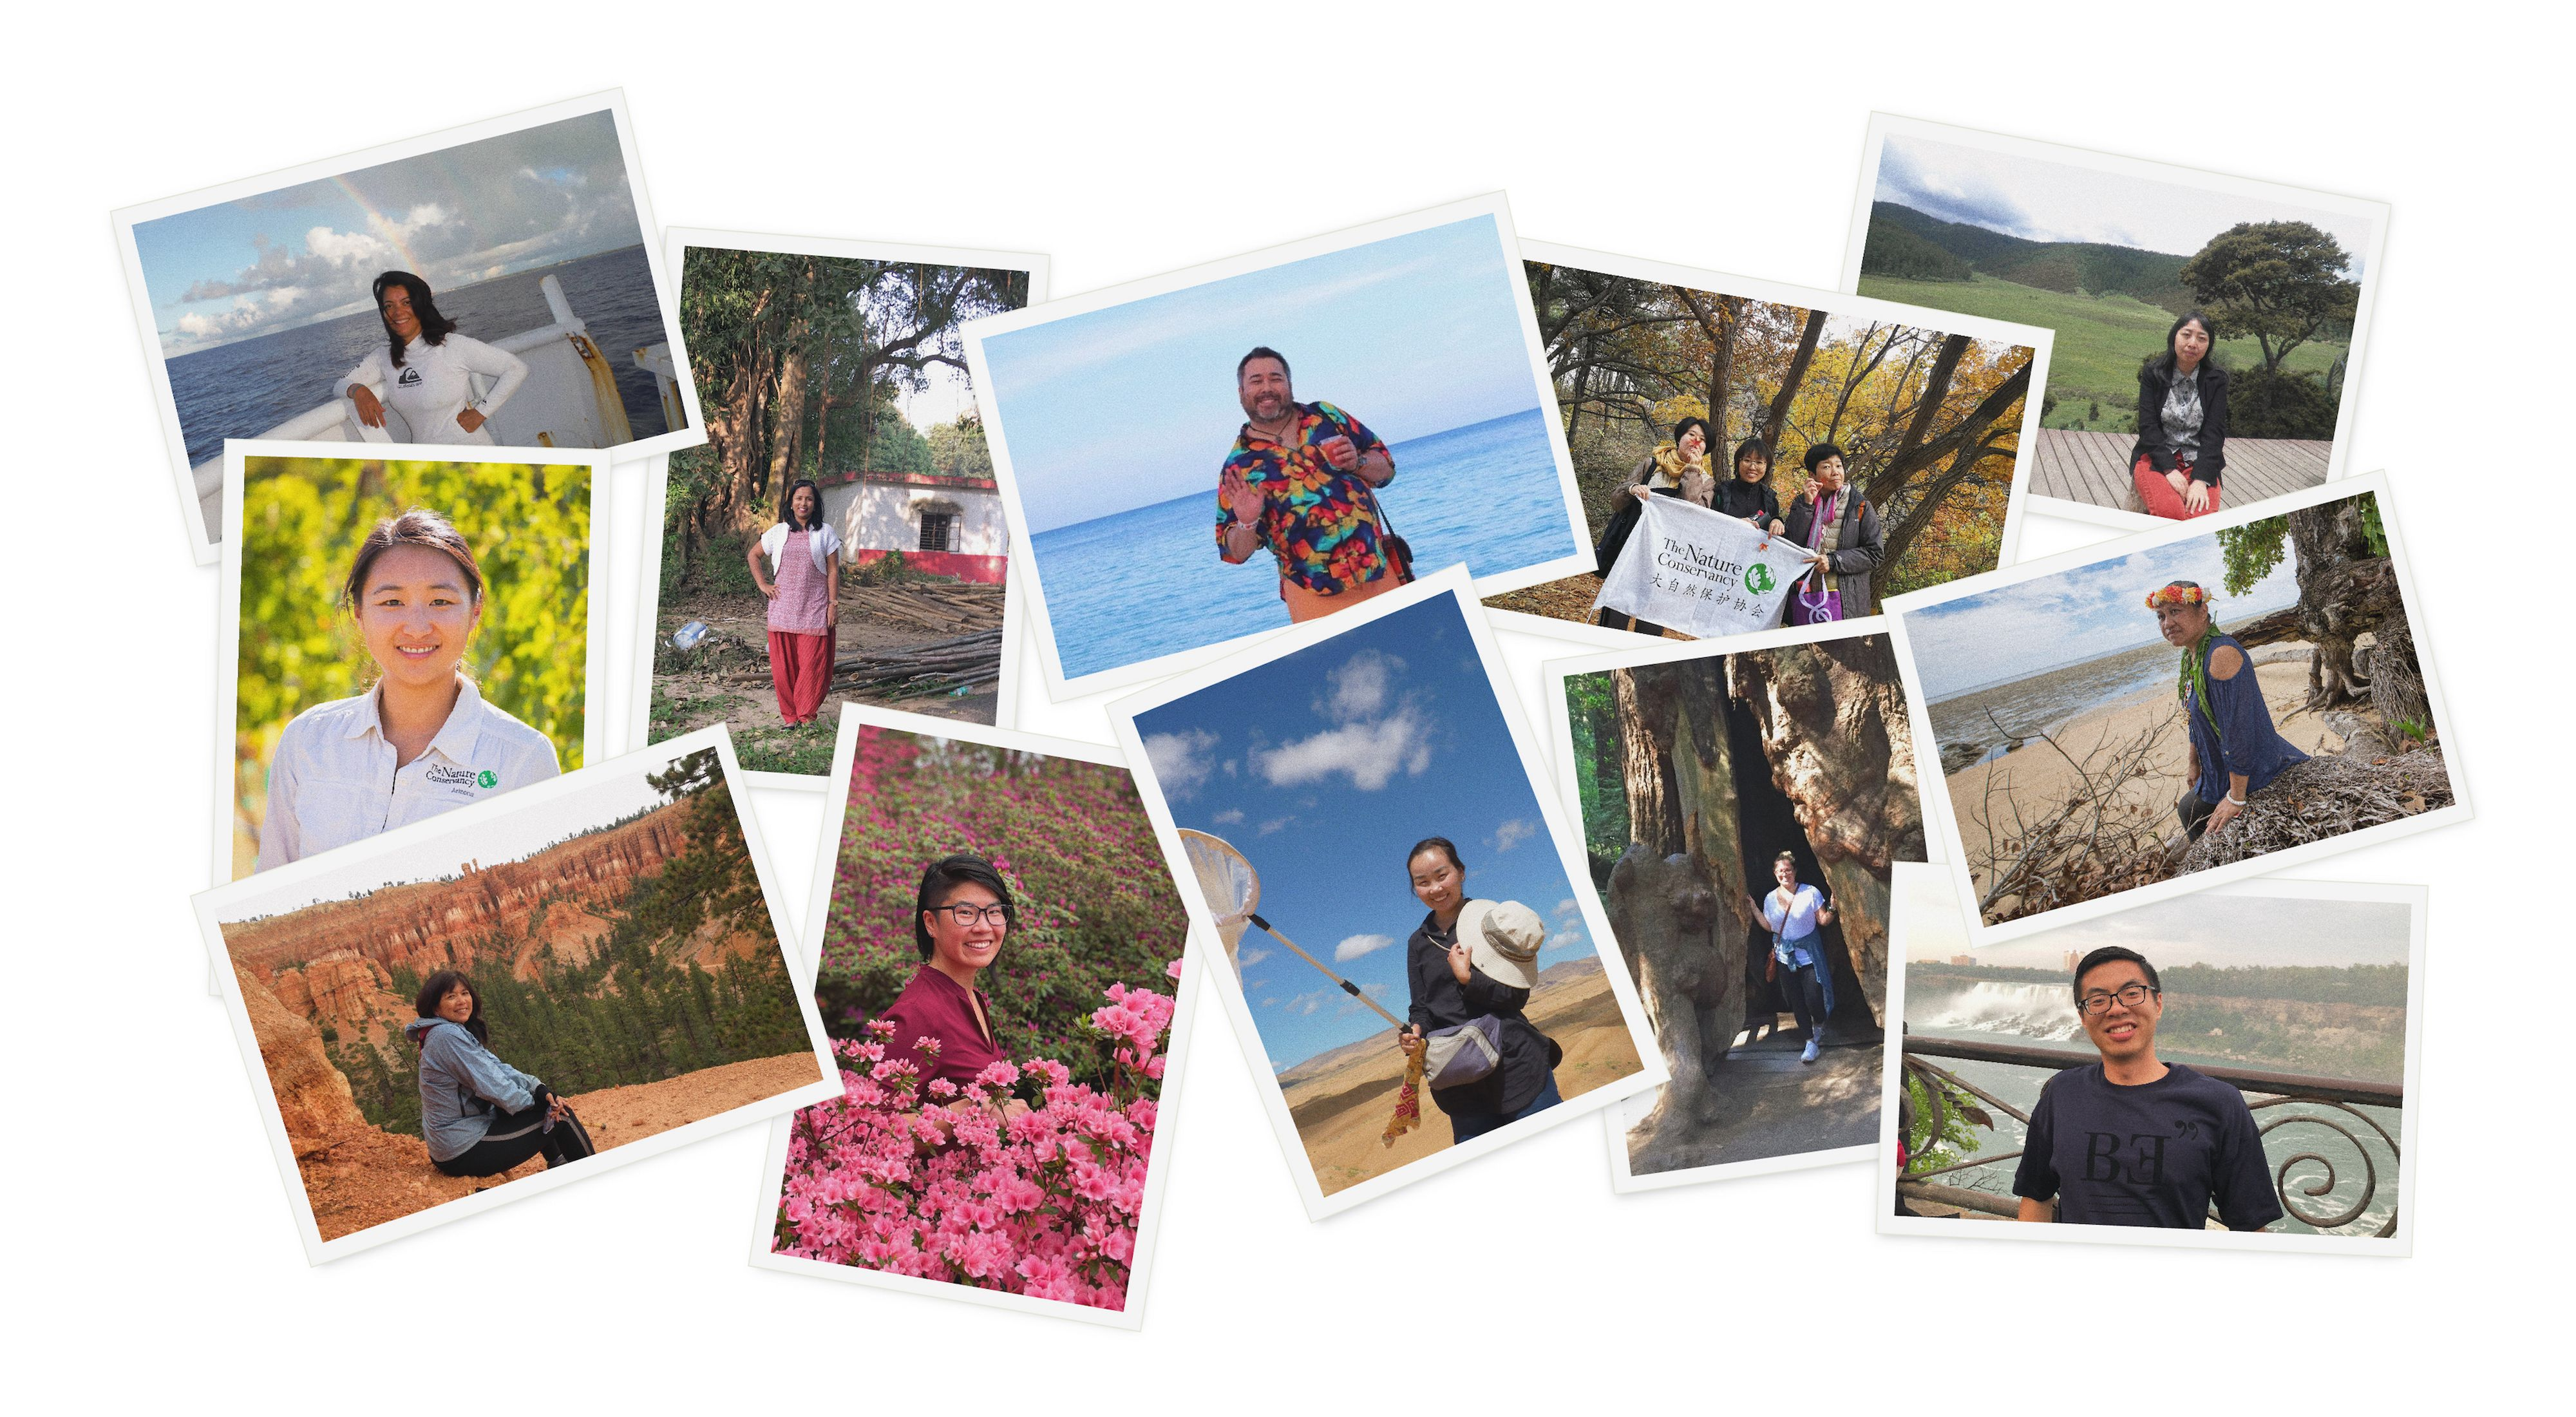 Celebrating Asian and Pacific Islander voices in conservation.